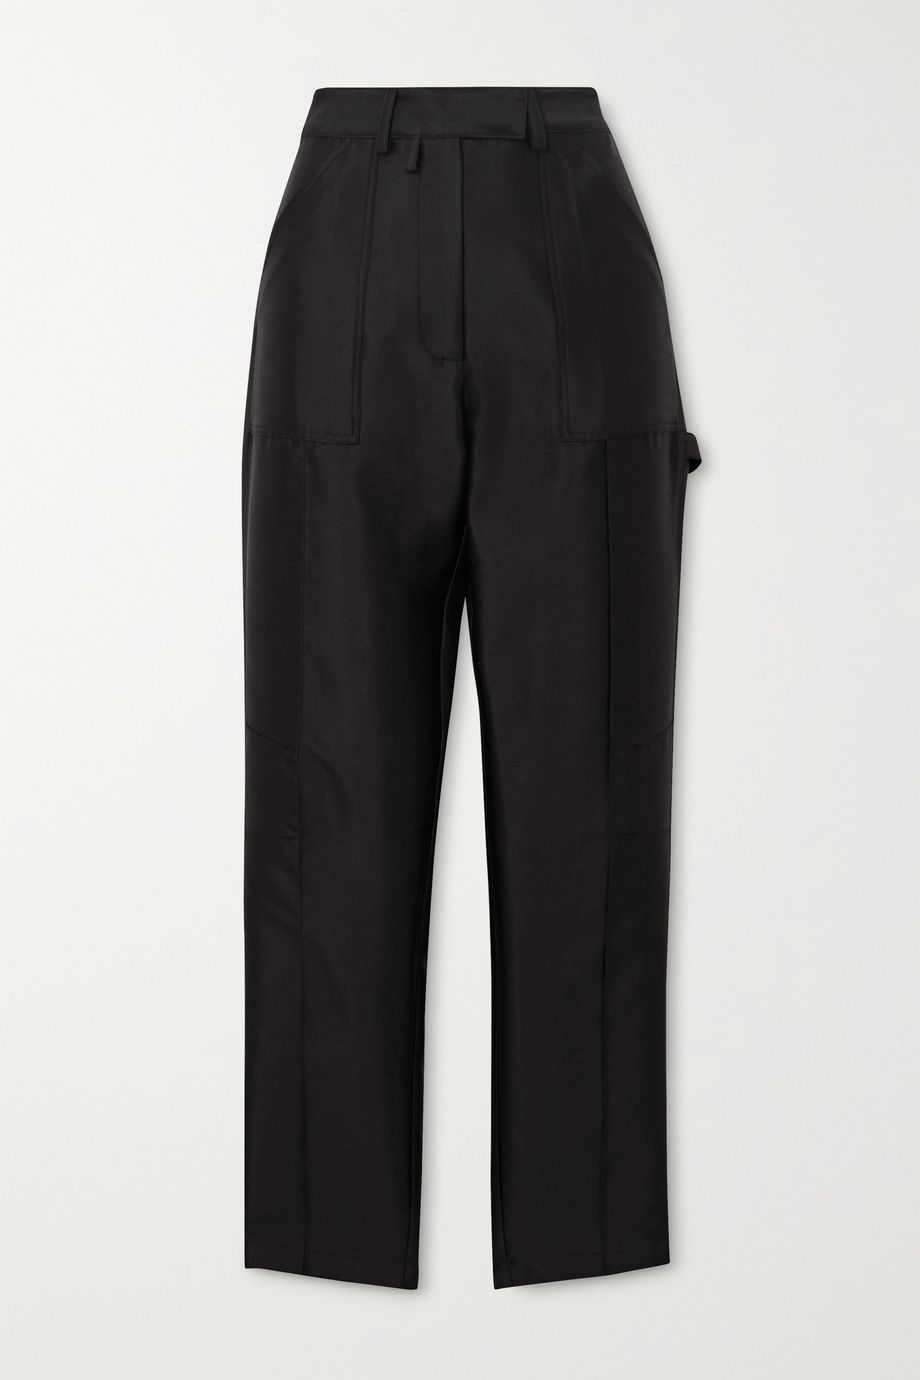 Christopher John Rogers Silk and wool-blend faille straight-leg cargo pants